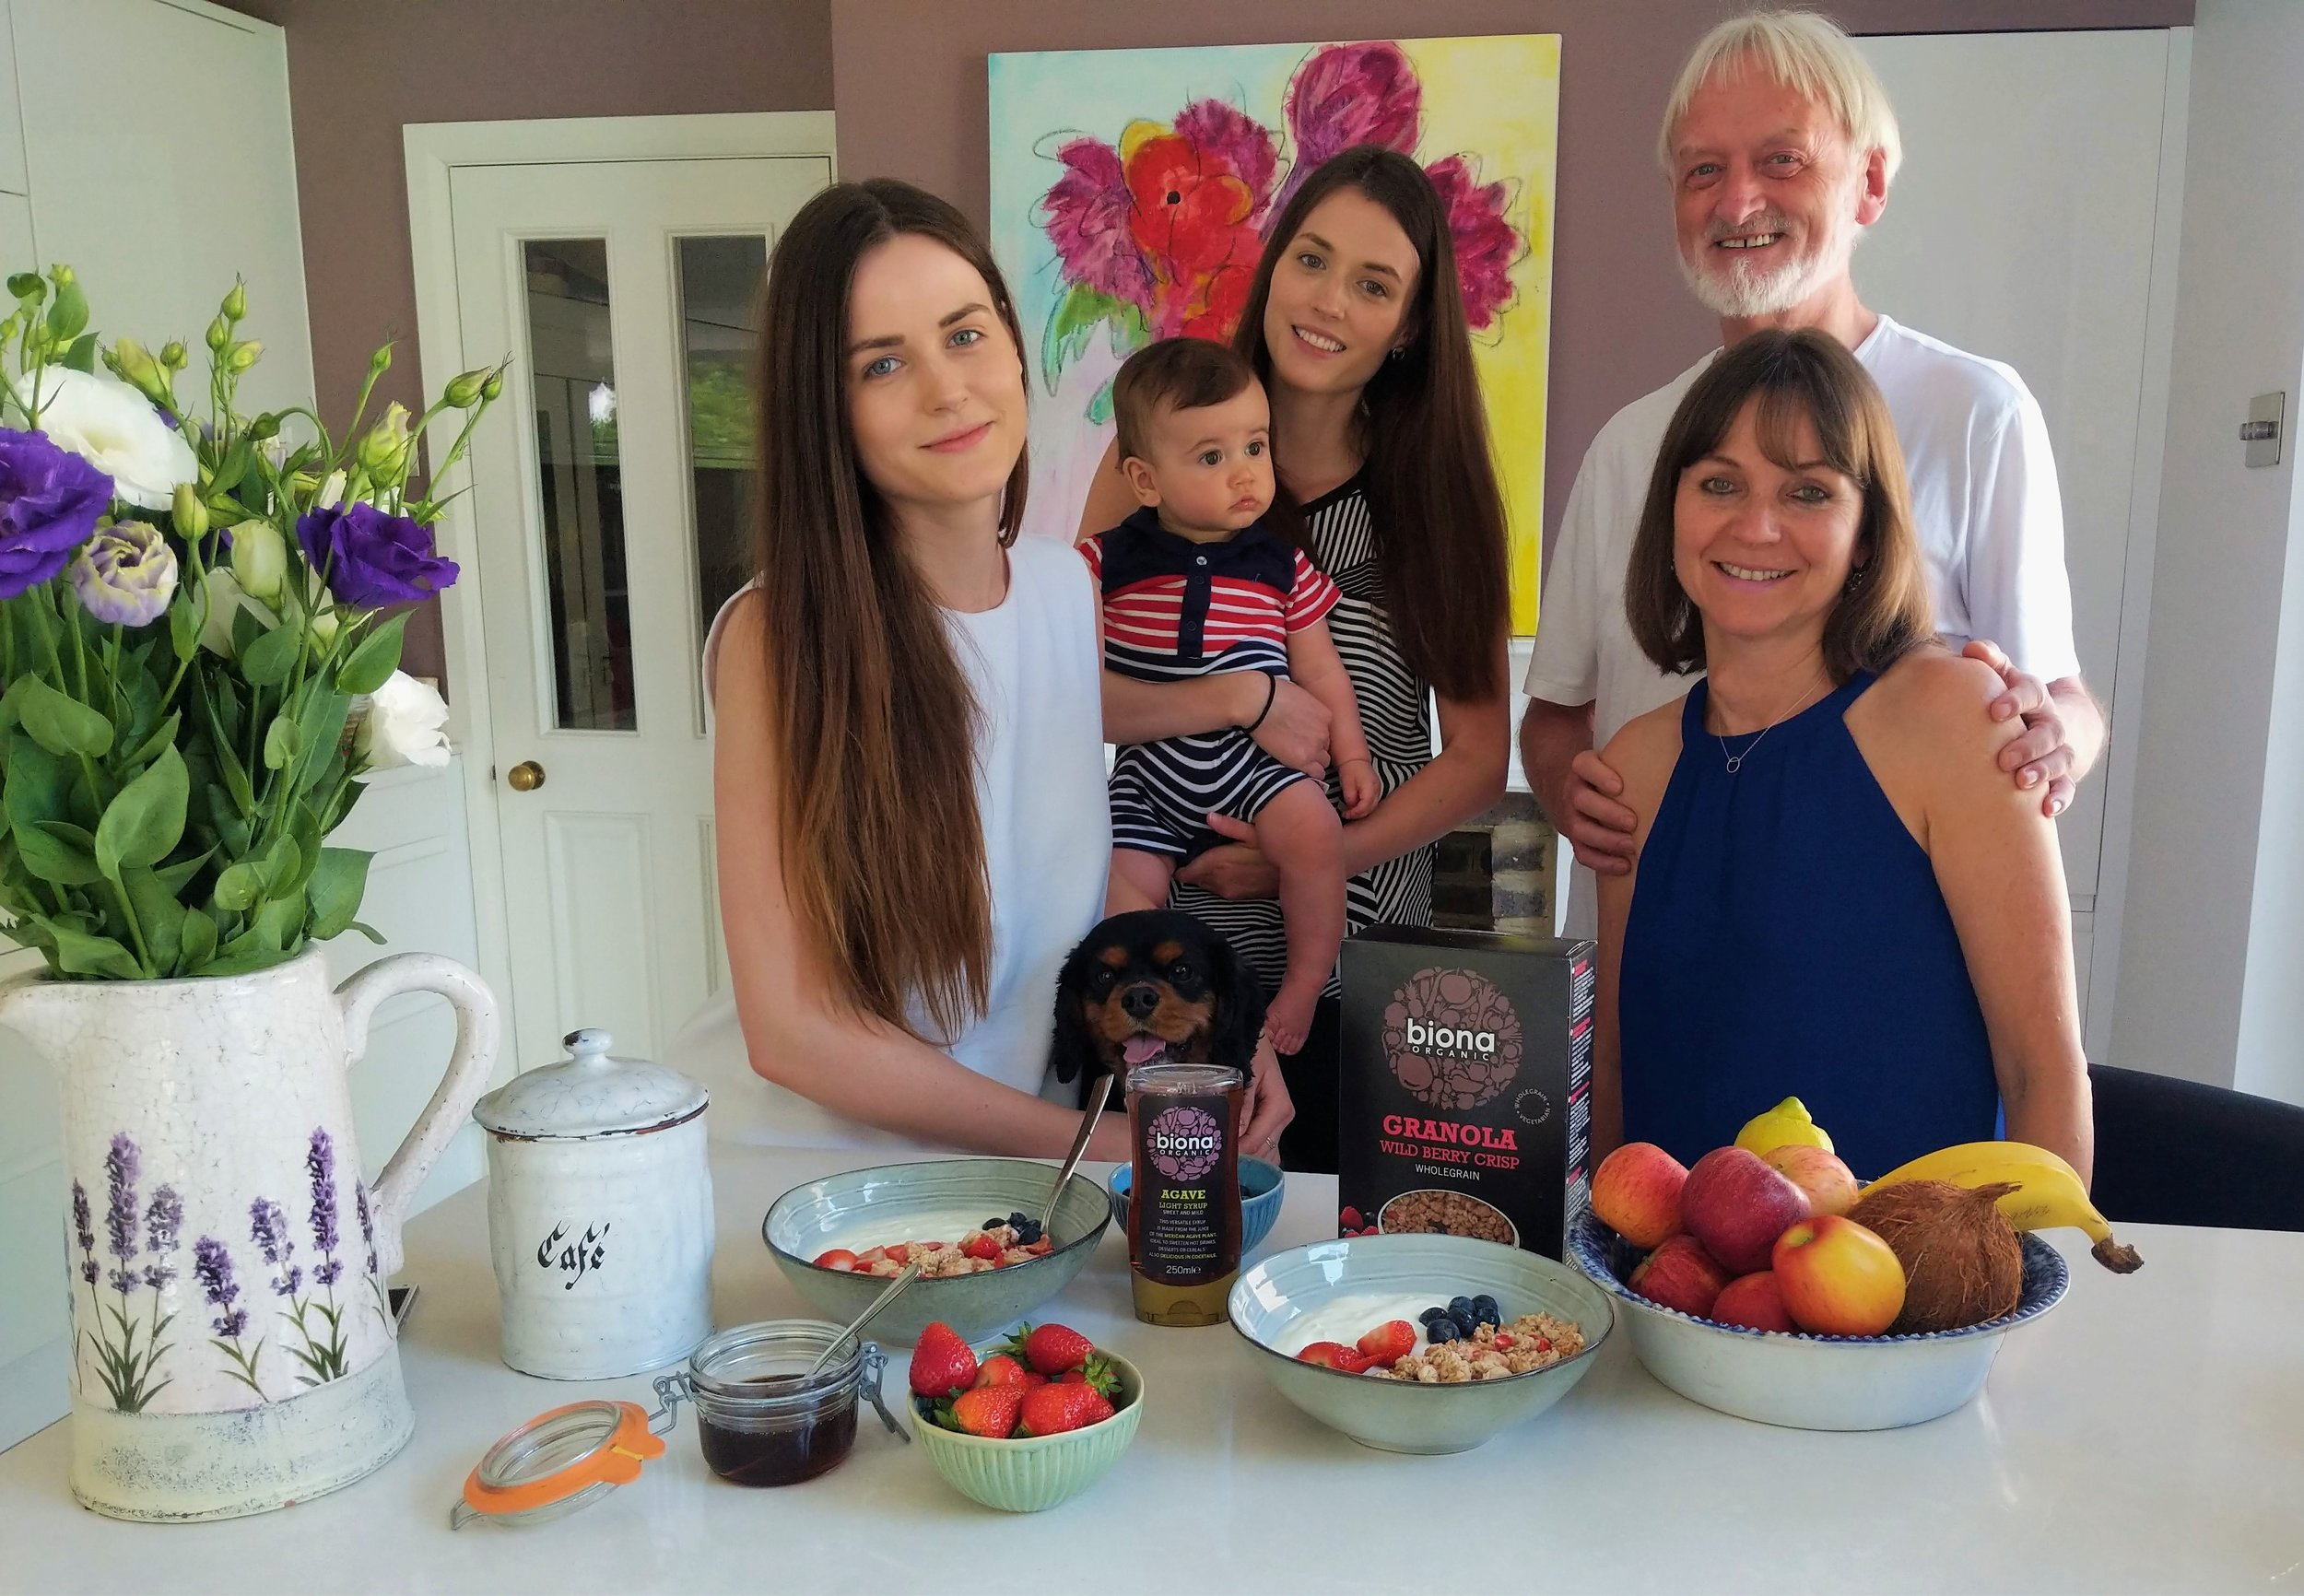 The Windmill Organic family: Elisa, baby Theo, Amy, Noel and Donata